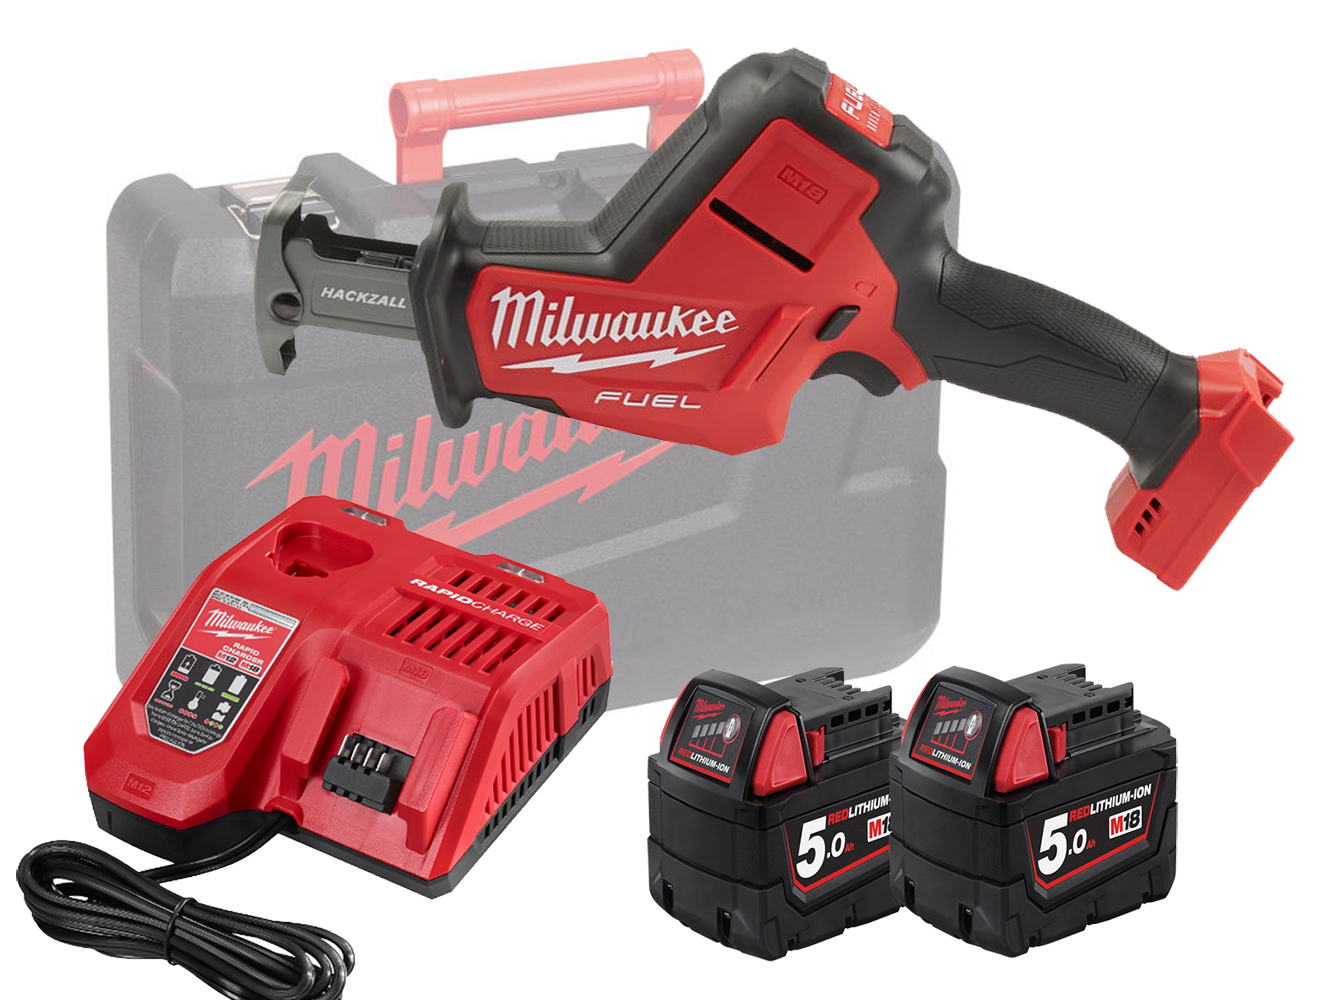 Milwaukee M18FHZ 18V Fuel Brushless Hackzall (Reciprocating Saw) - 5.0Ah Pack